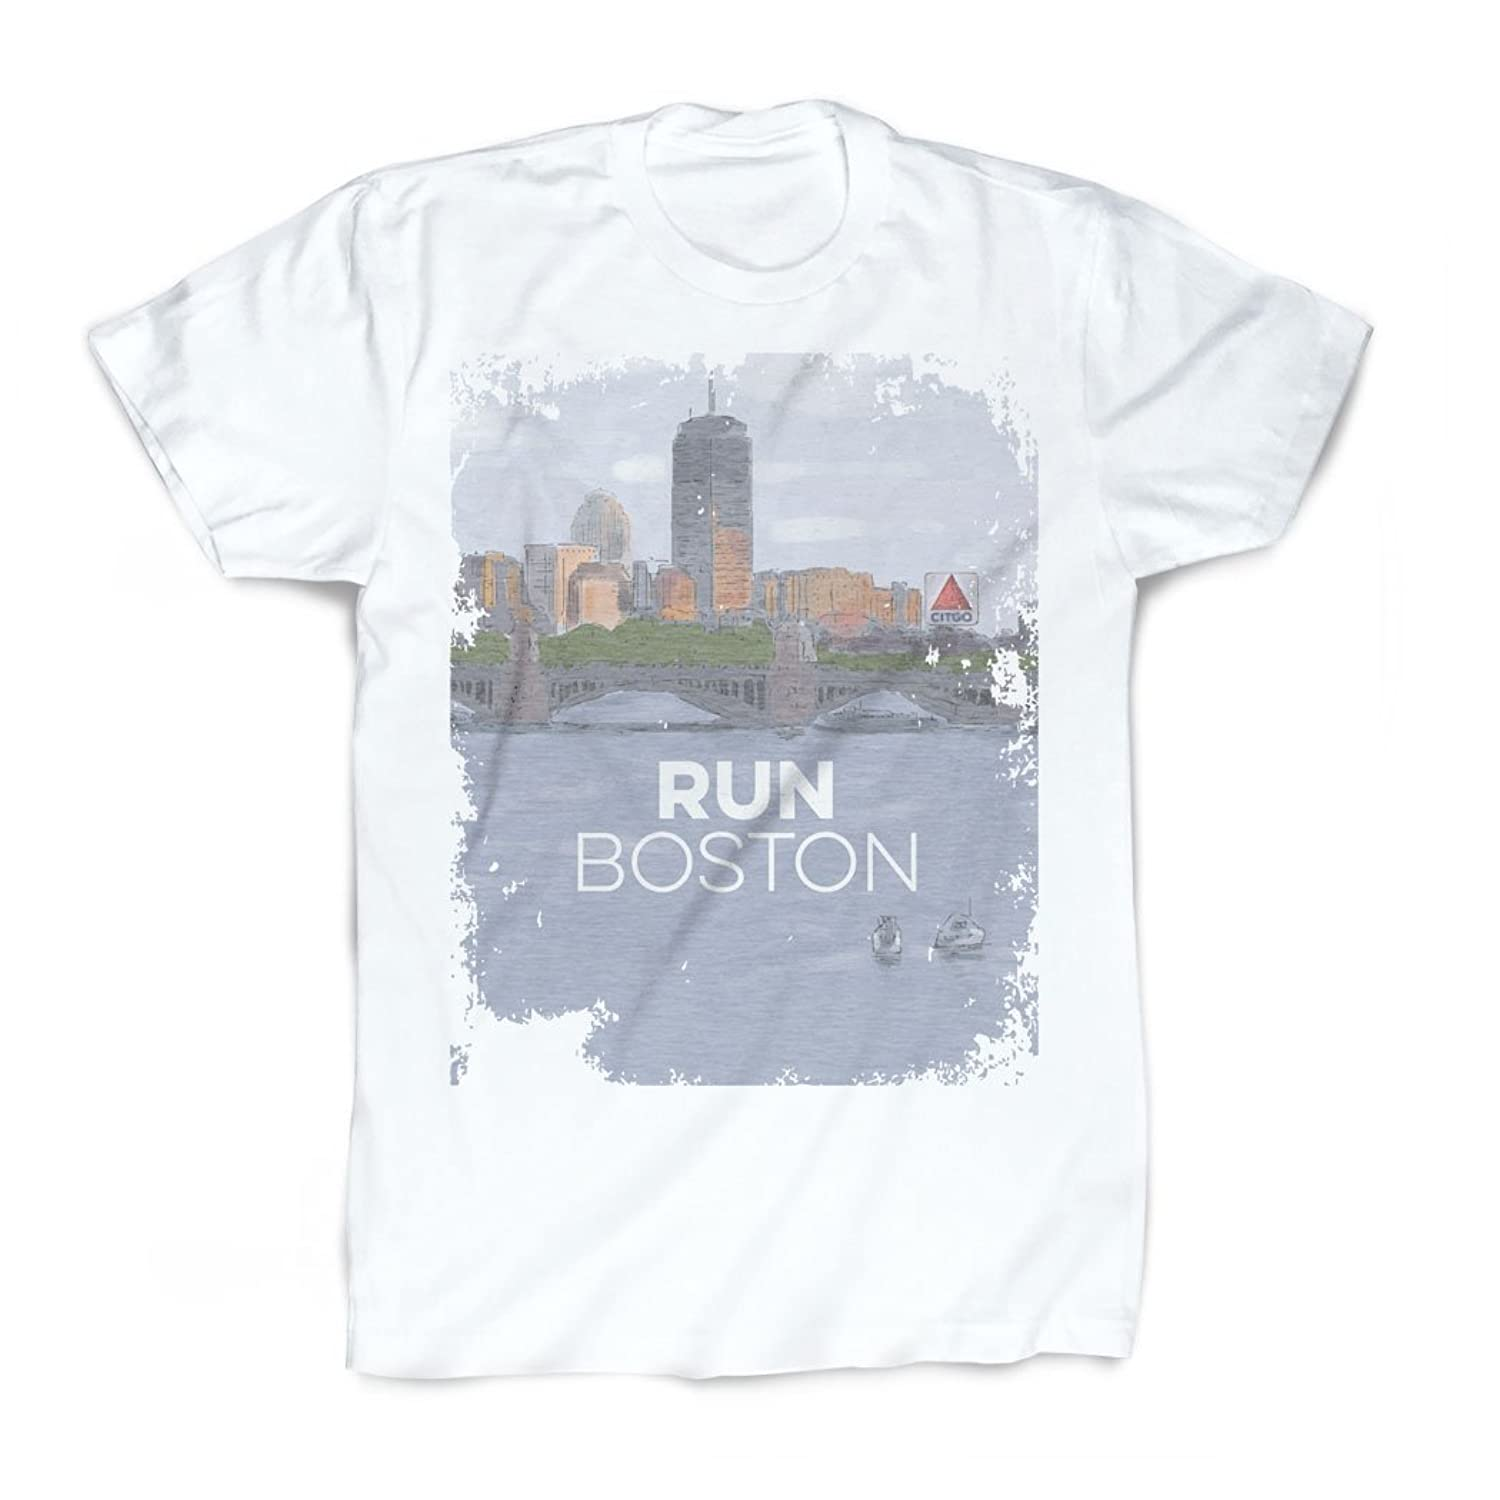 Gone For a Run Vintage Running T-Shirt - Boston Sketch